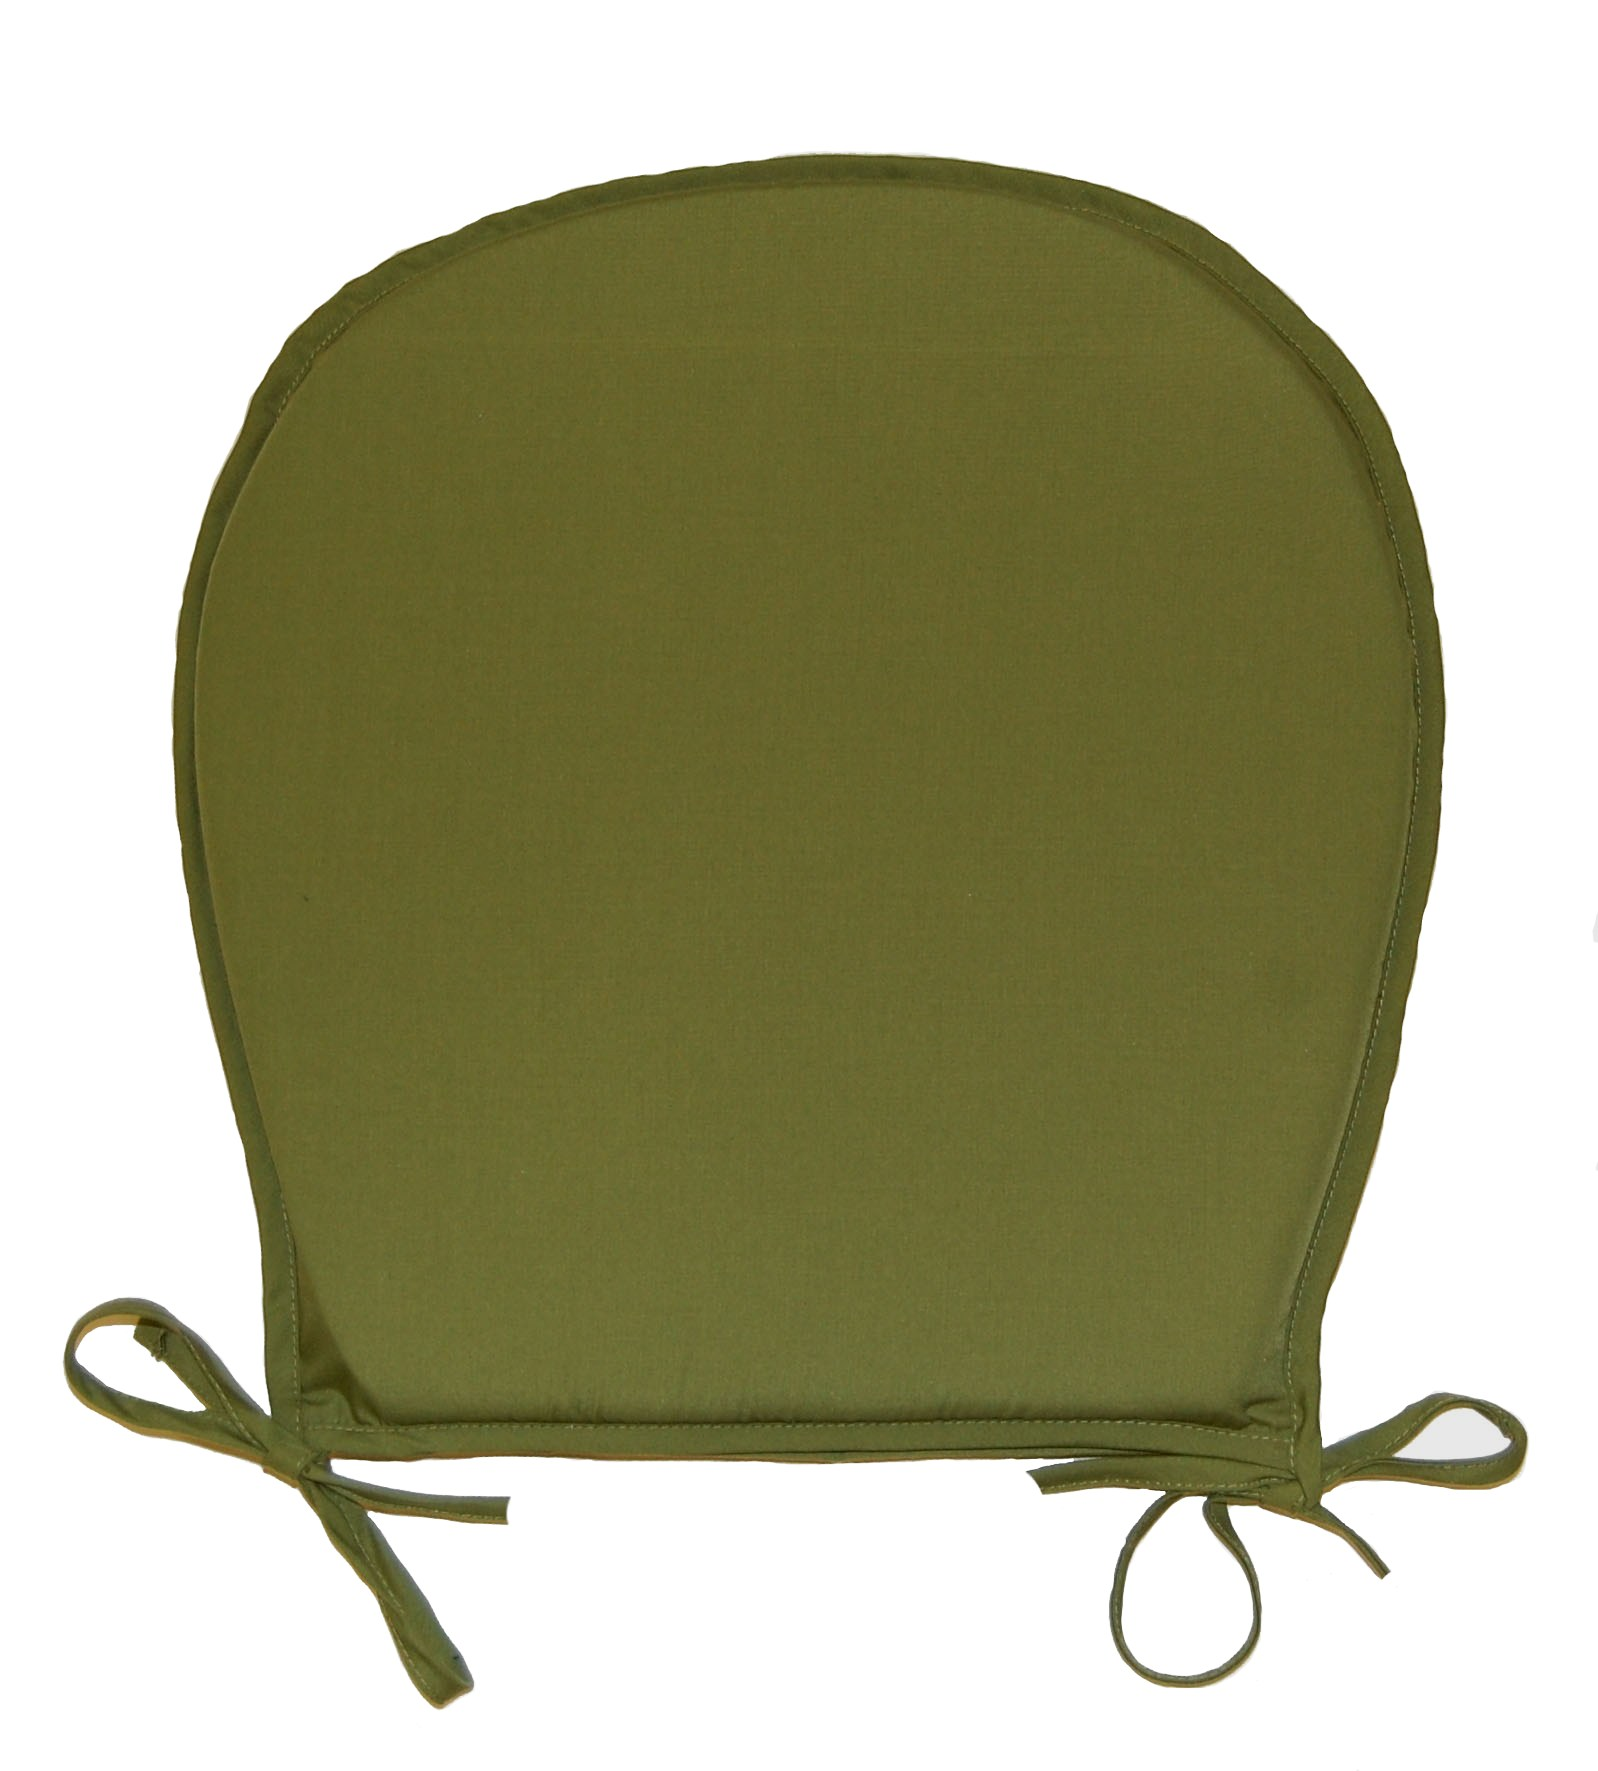 Chair Pad Covers Chair Seat Pads Plain Round Kitchen Garden Furniture